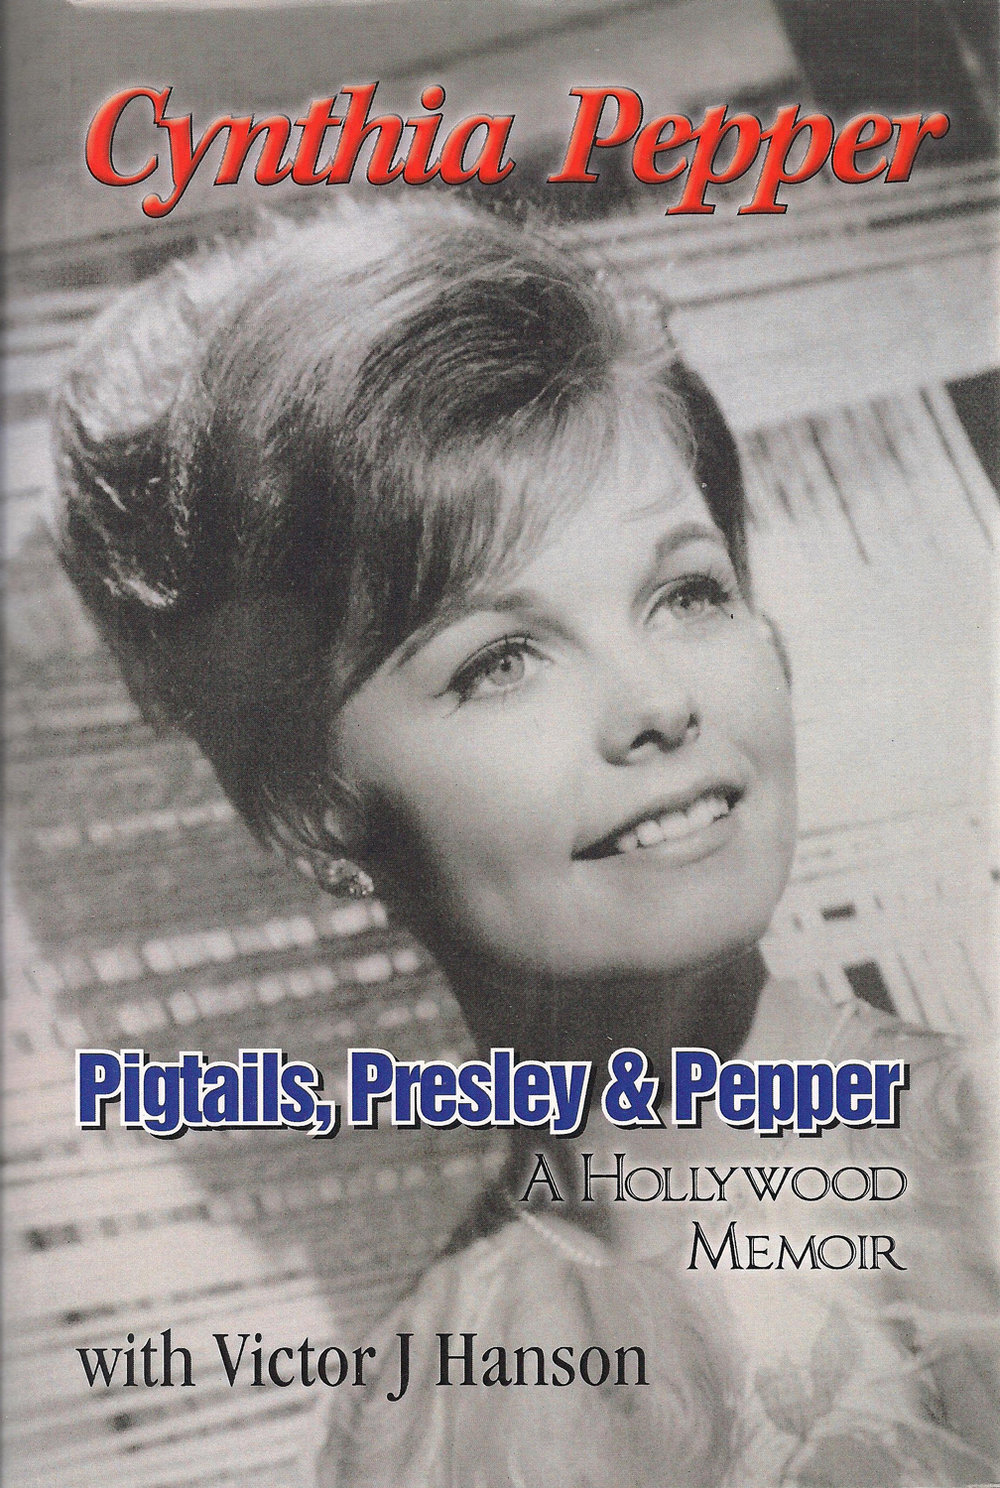 Book cover of   Pigtails, Presley & Pepper   by Cynthia Pepper, with Victor J Hanson. Cover design by Victor J. Hanson.